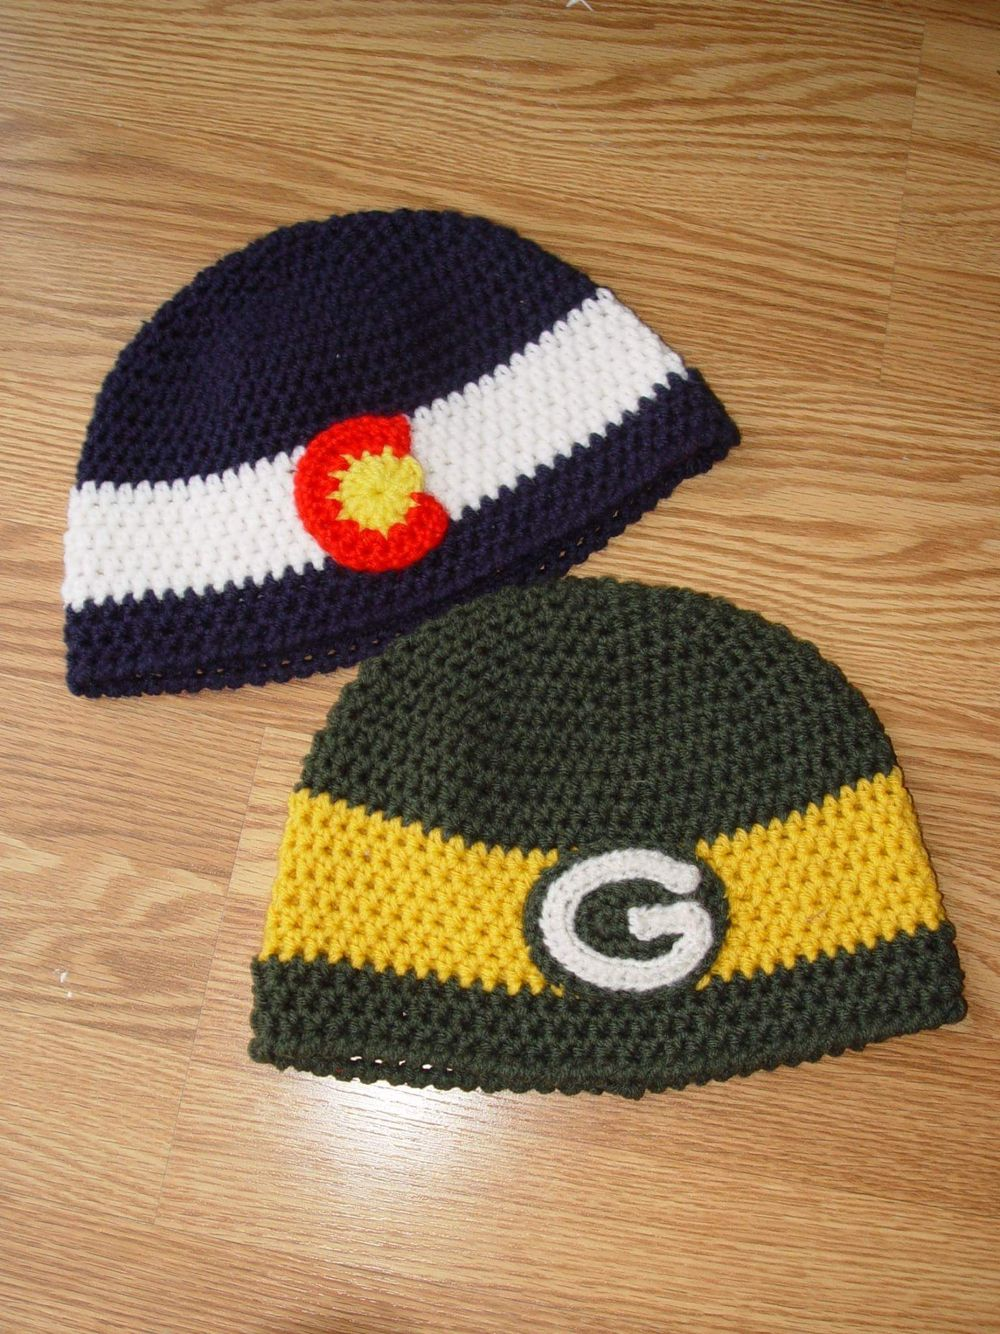 Changed The Colorado Pride Beanie Into A Green Bay Packer Hat For A Friend Of Mine Made From Acrylic Wor Green Bay Packers Hat Packers Hat Worsted Weight Yarn